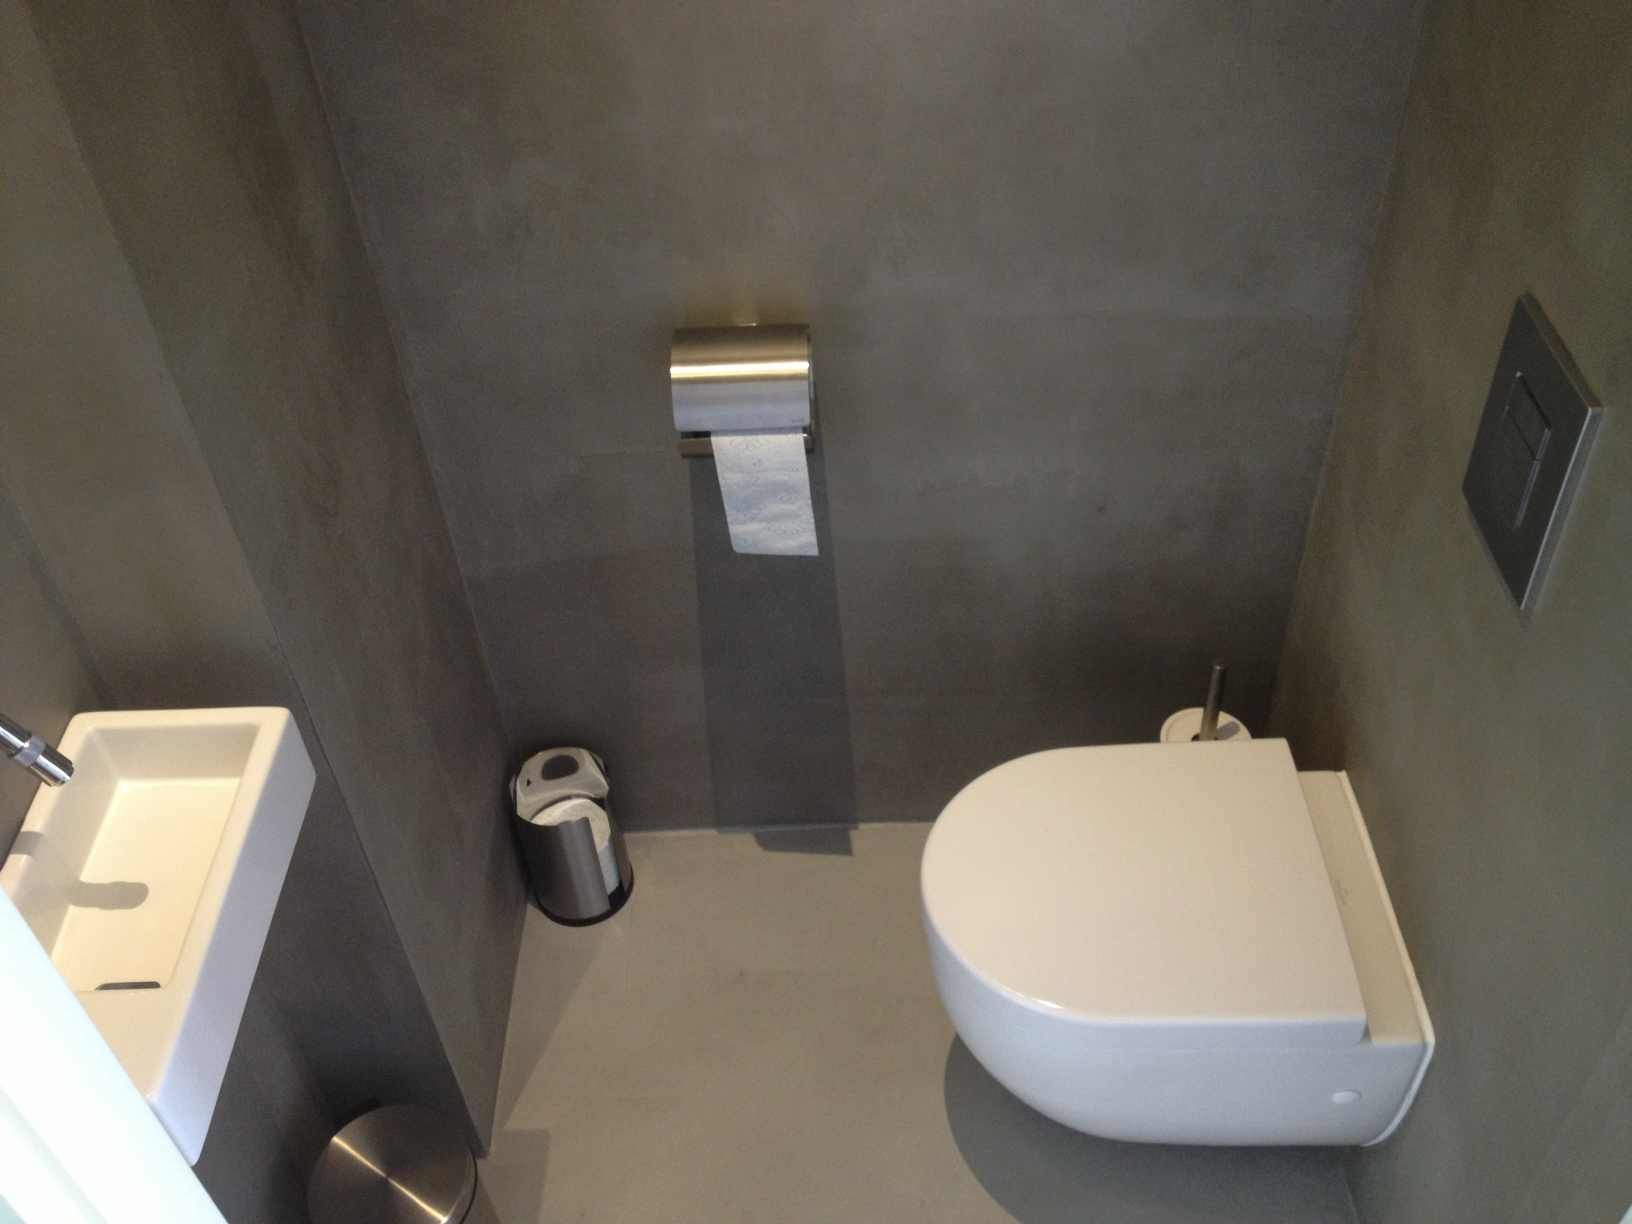 Toilet Beton Cire : Image result for beton cire vloer wit bathrooms